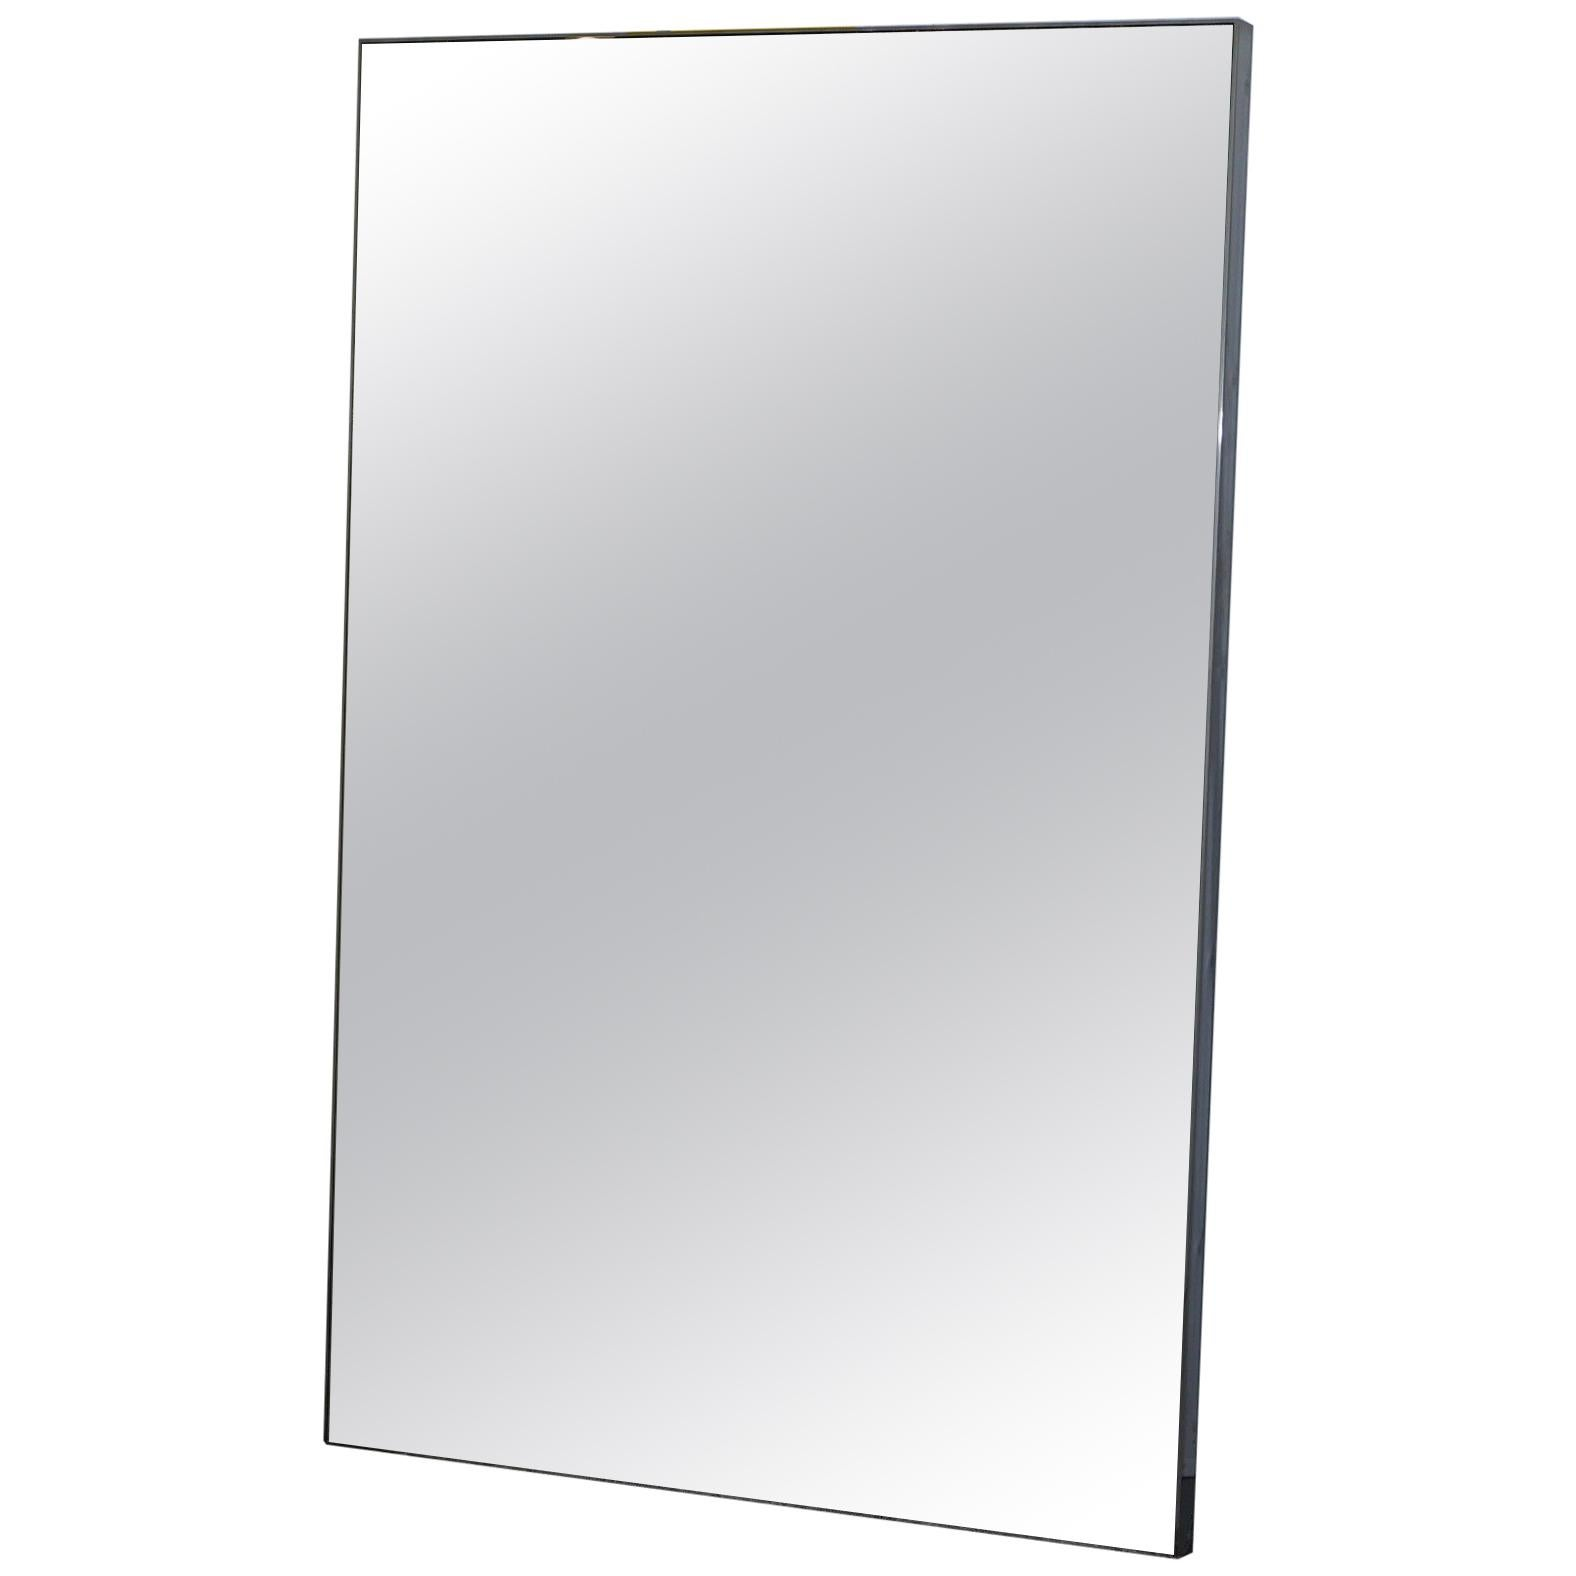 Large Chrome Framed Full Sized Mirror Back Light Floor Standing